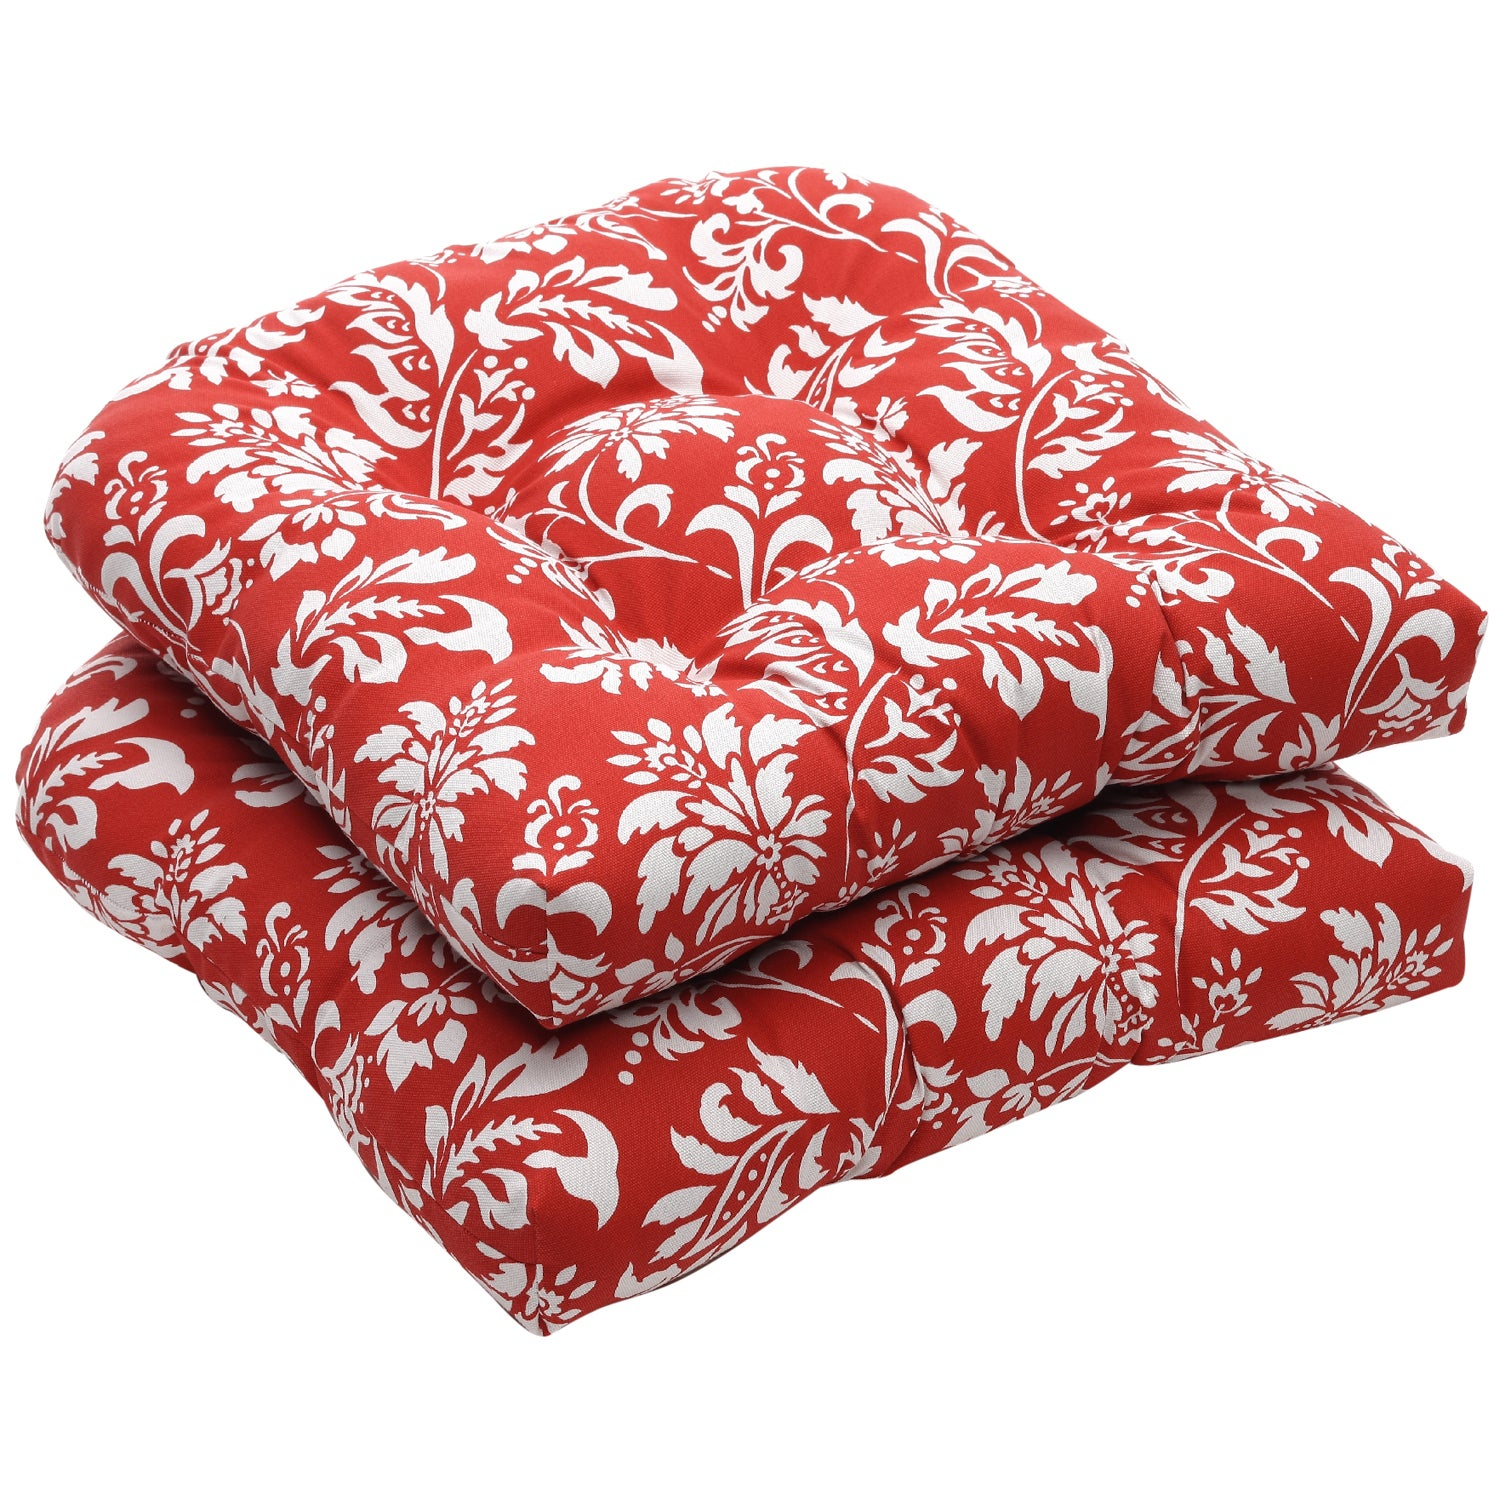 Outdoor Red and White Floral Wicker Seat Cushions (Set of 2)